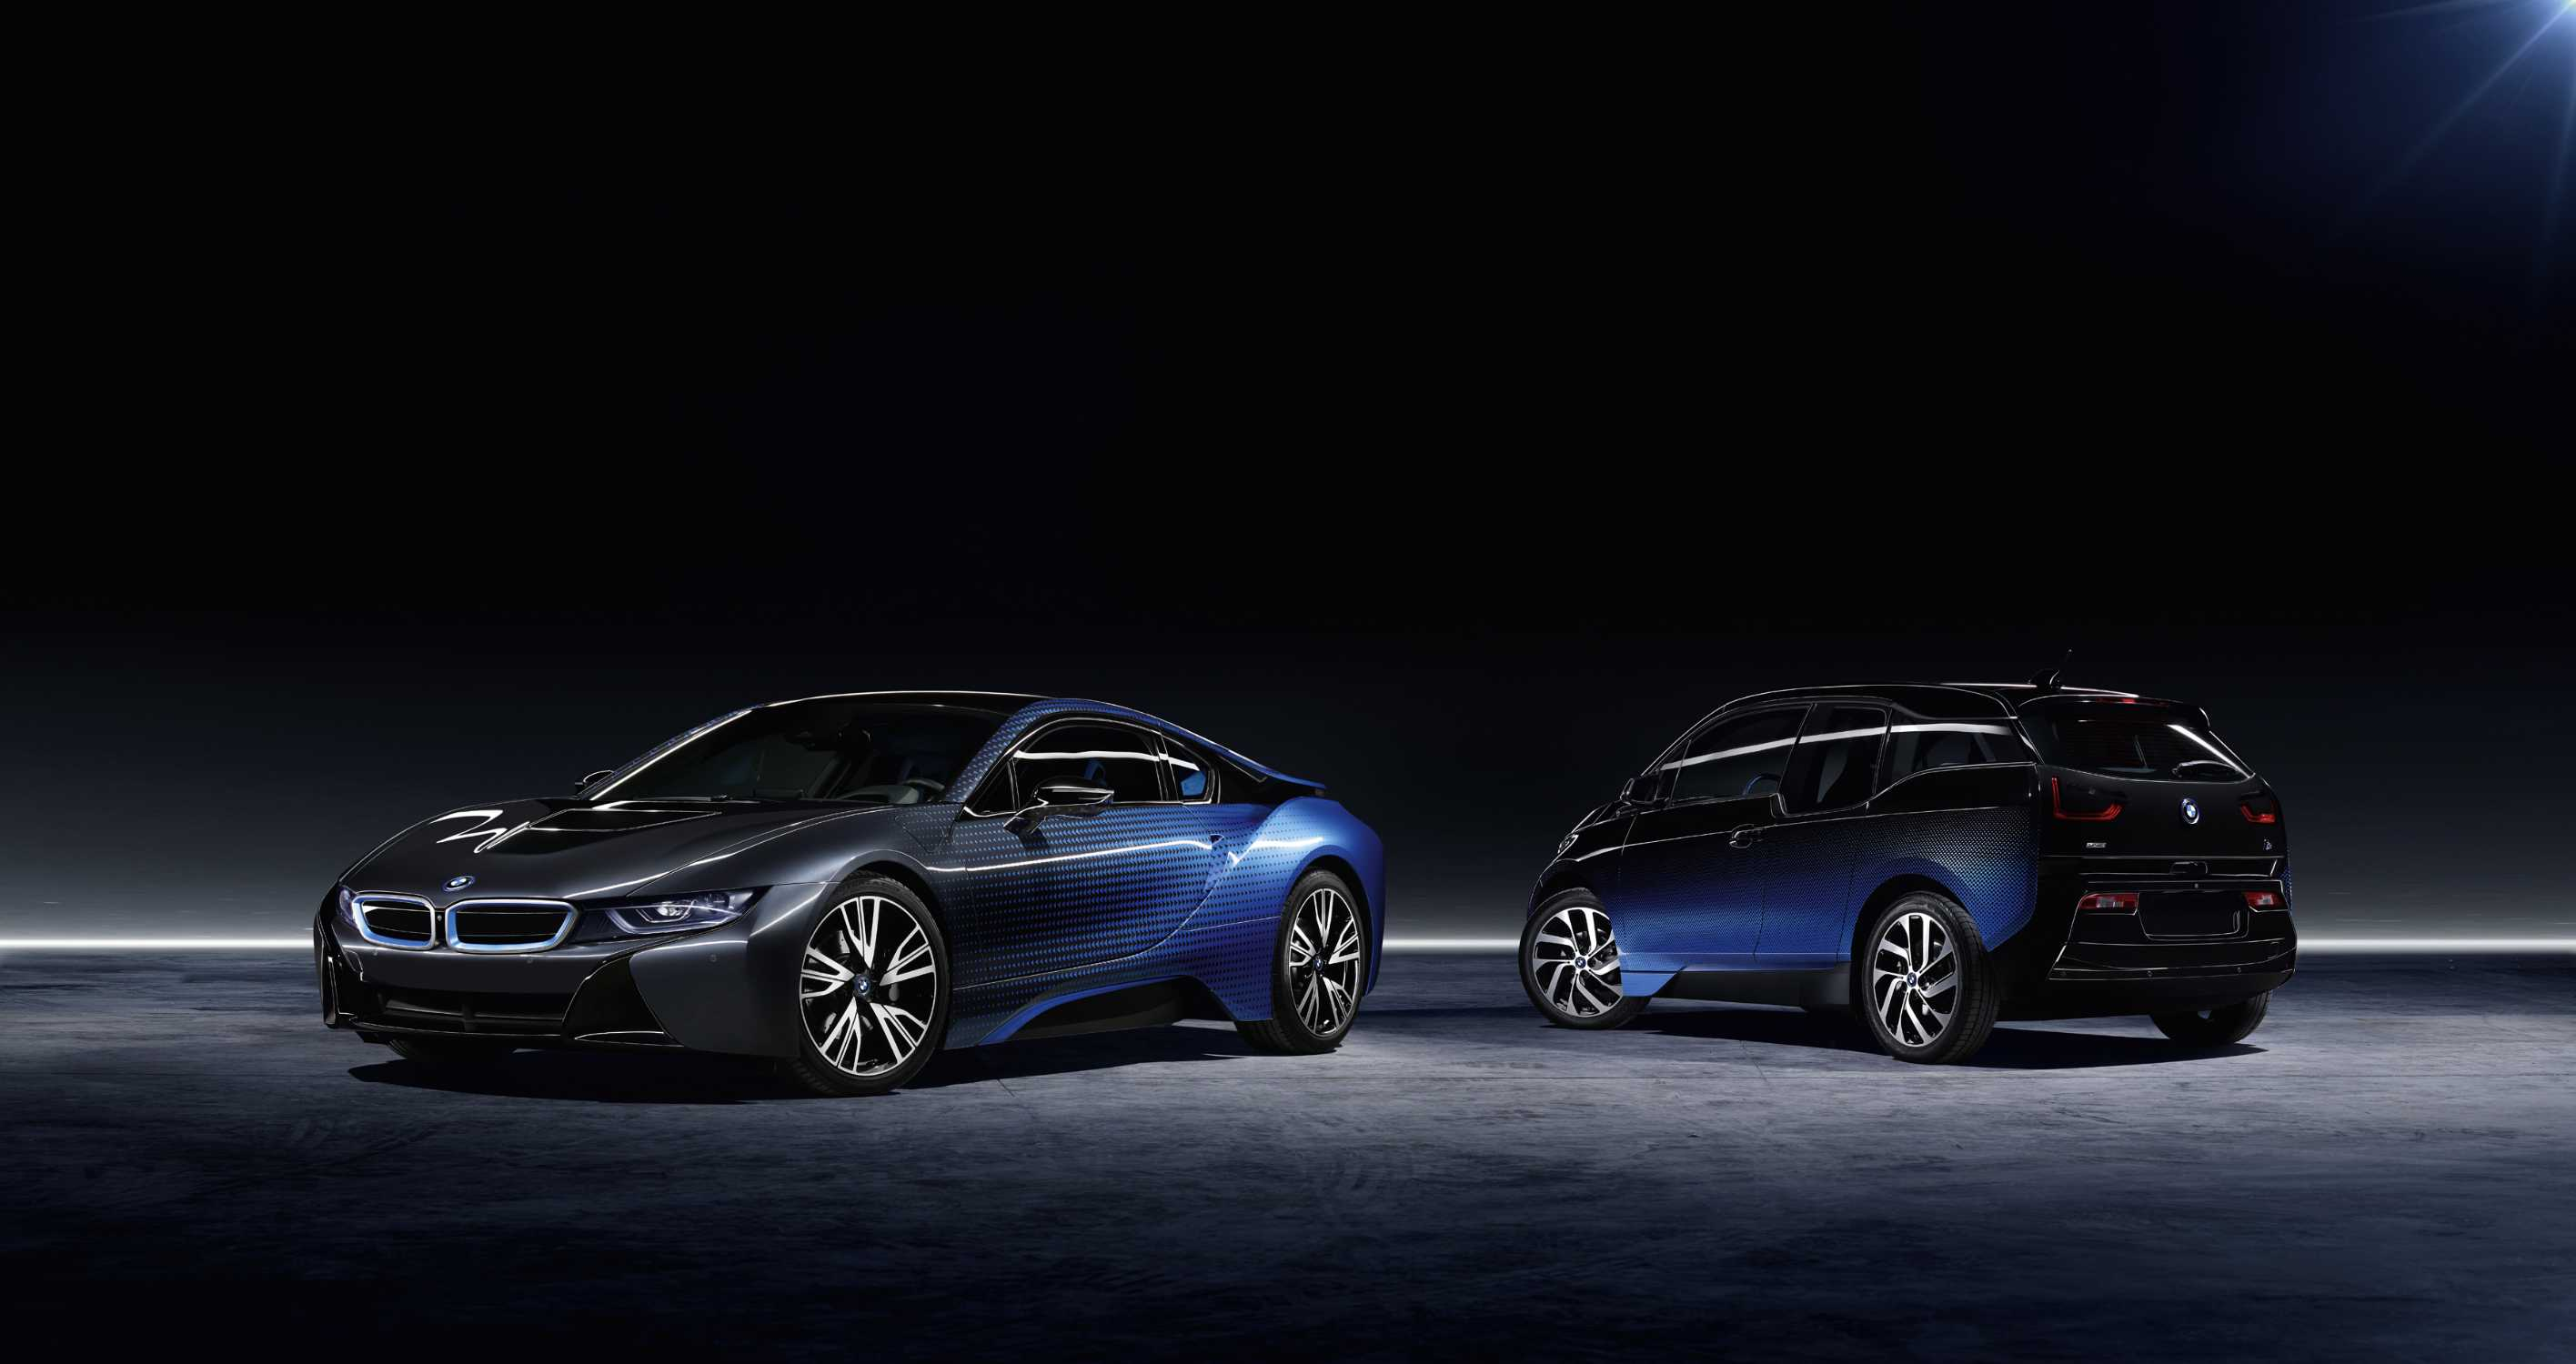 Bmw I And Garage Italia Customs To Present The Bmw I3 And The Bmw I8